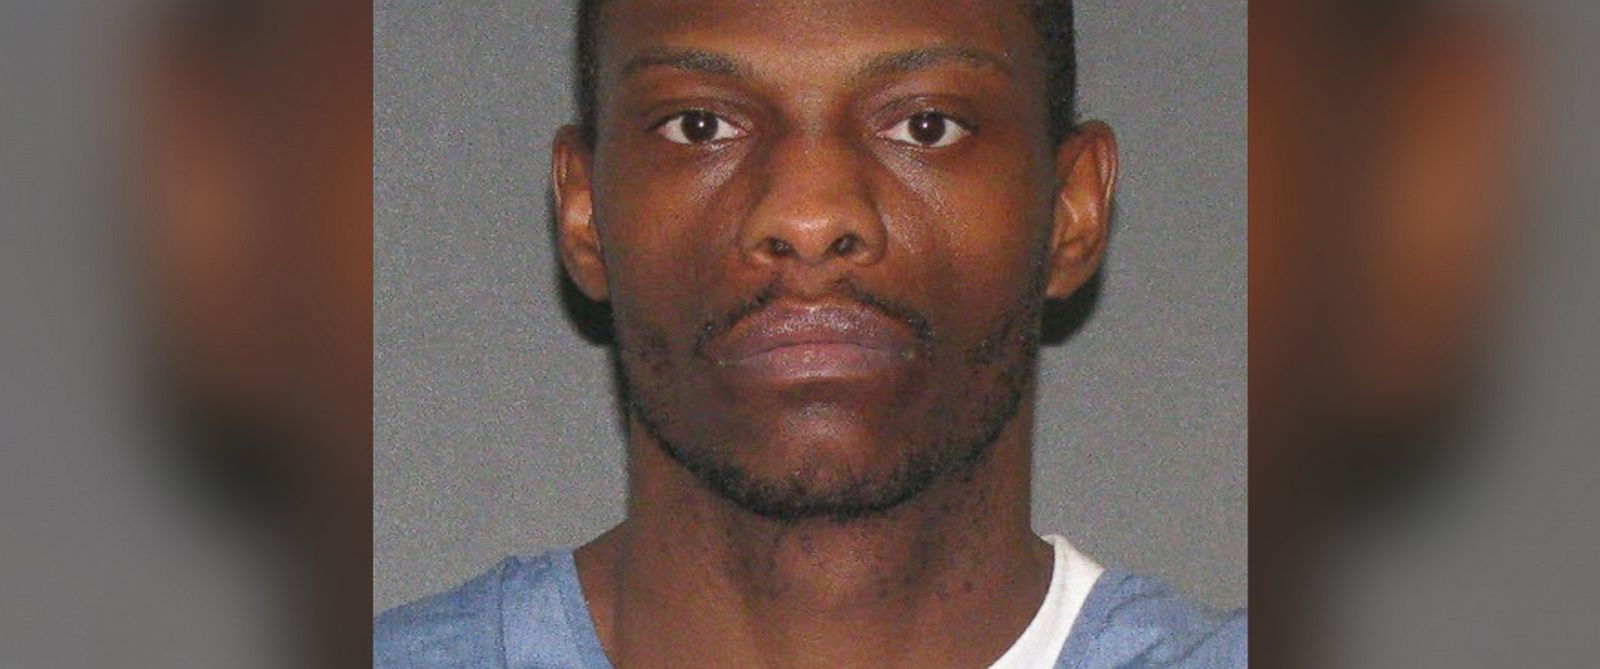 PHOTO: Rodriquez Purnell, 30, was mistakenly released from Maryland Reception, Diagnostic and Classification Center in Baltimore, Oct. 17, 2014.